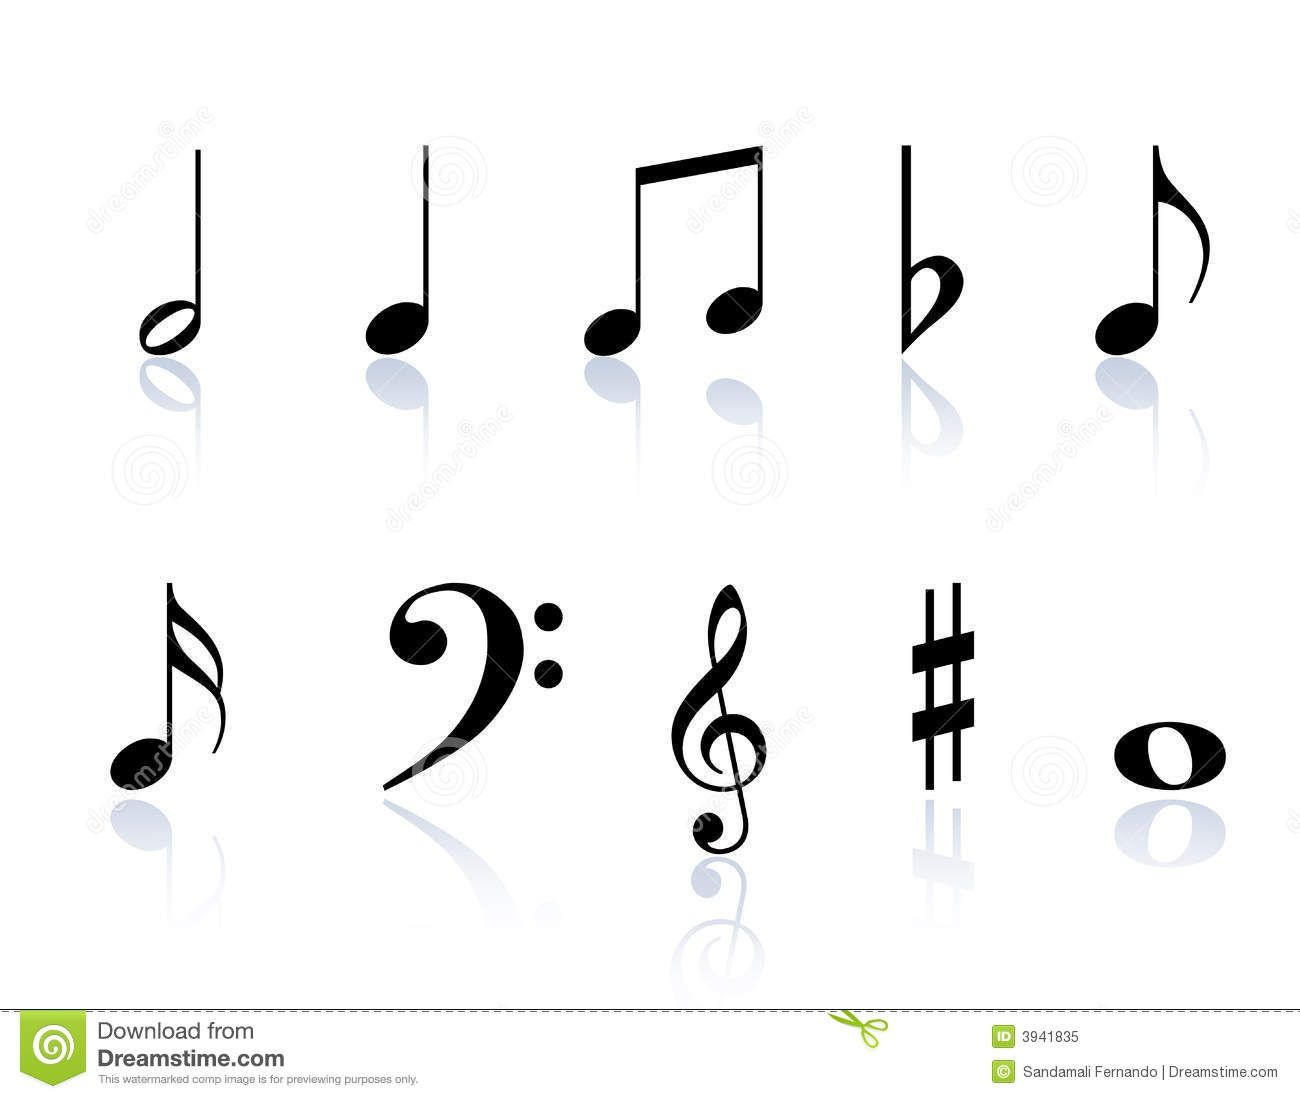 Music notes symbols something interesting music symbols music notes symbols something interesting biocorpaavc Images